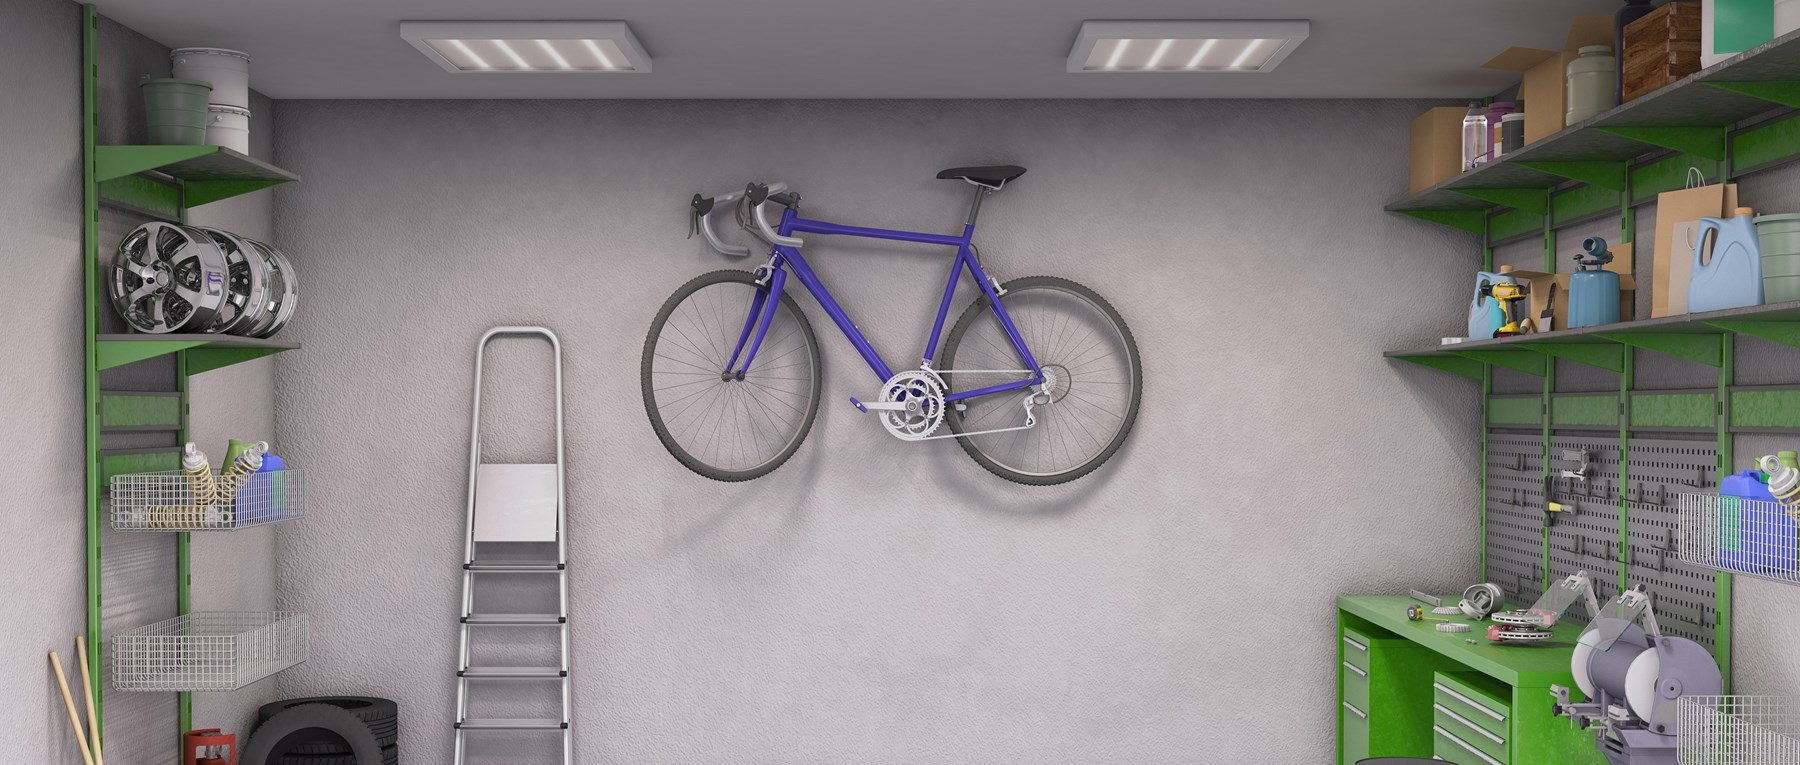 Garage interior with purple bicycle hanging on the wall